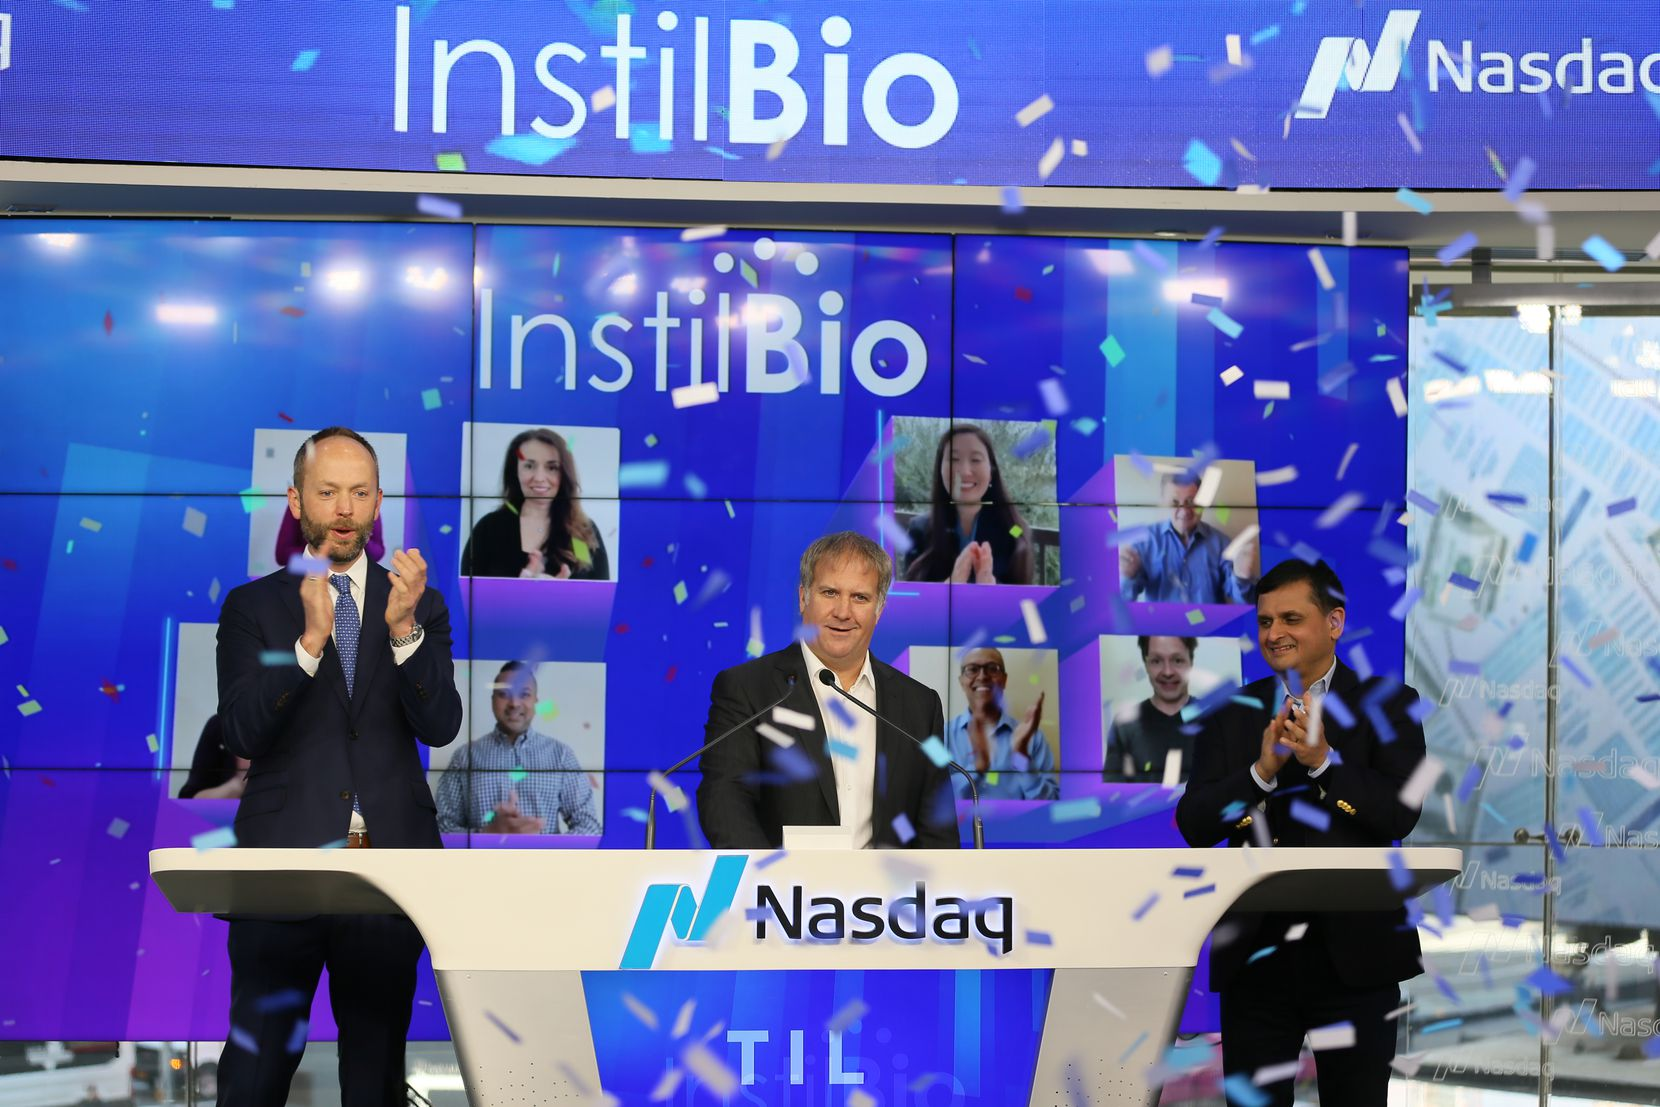 Dallas-based Instil Bio Inc. went public this year. CEO Bronson Crouch rang the opening bell at Nasdaq.